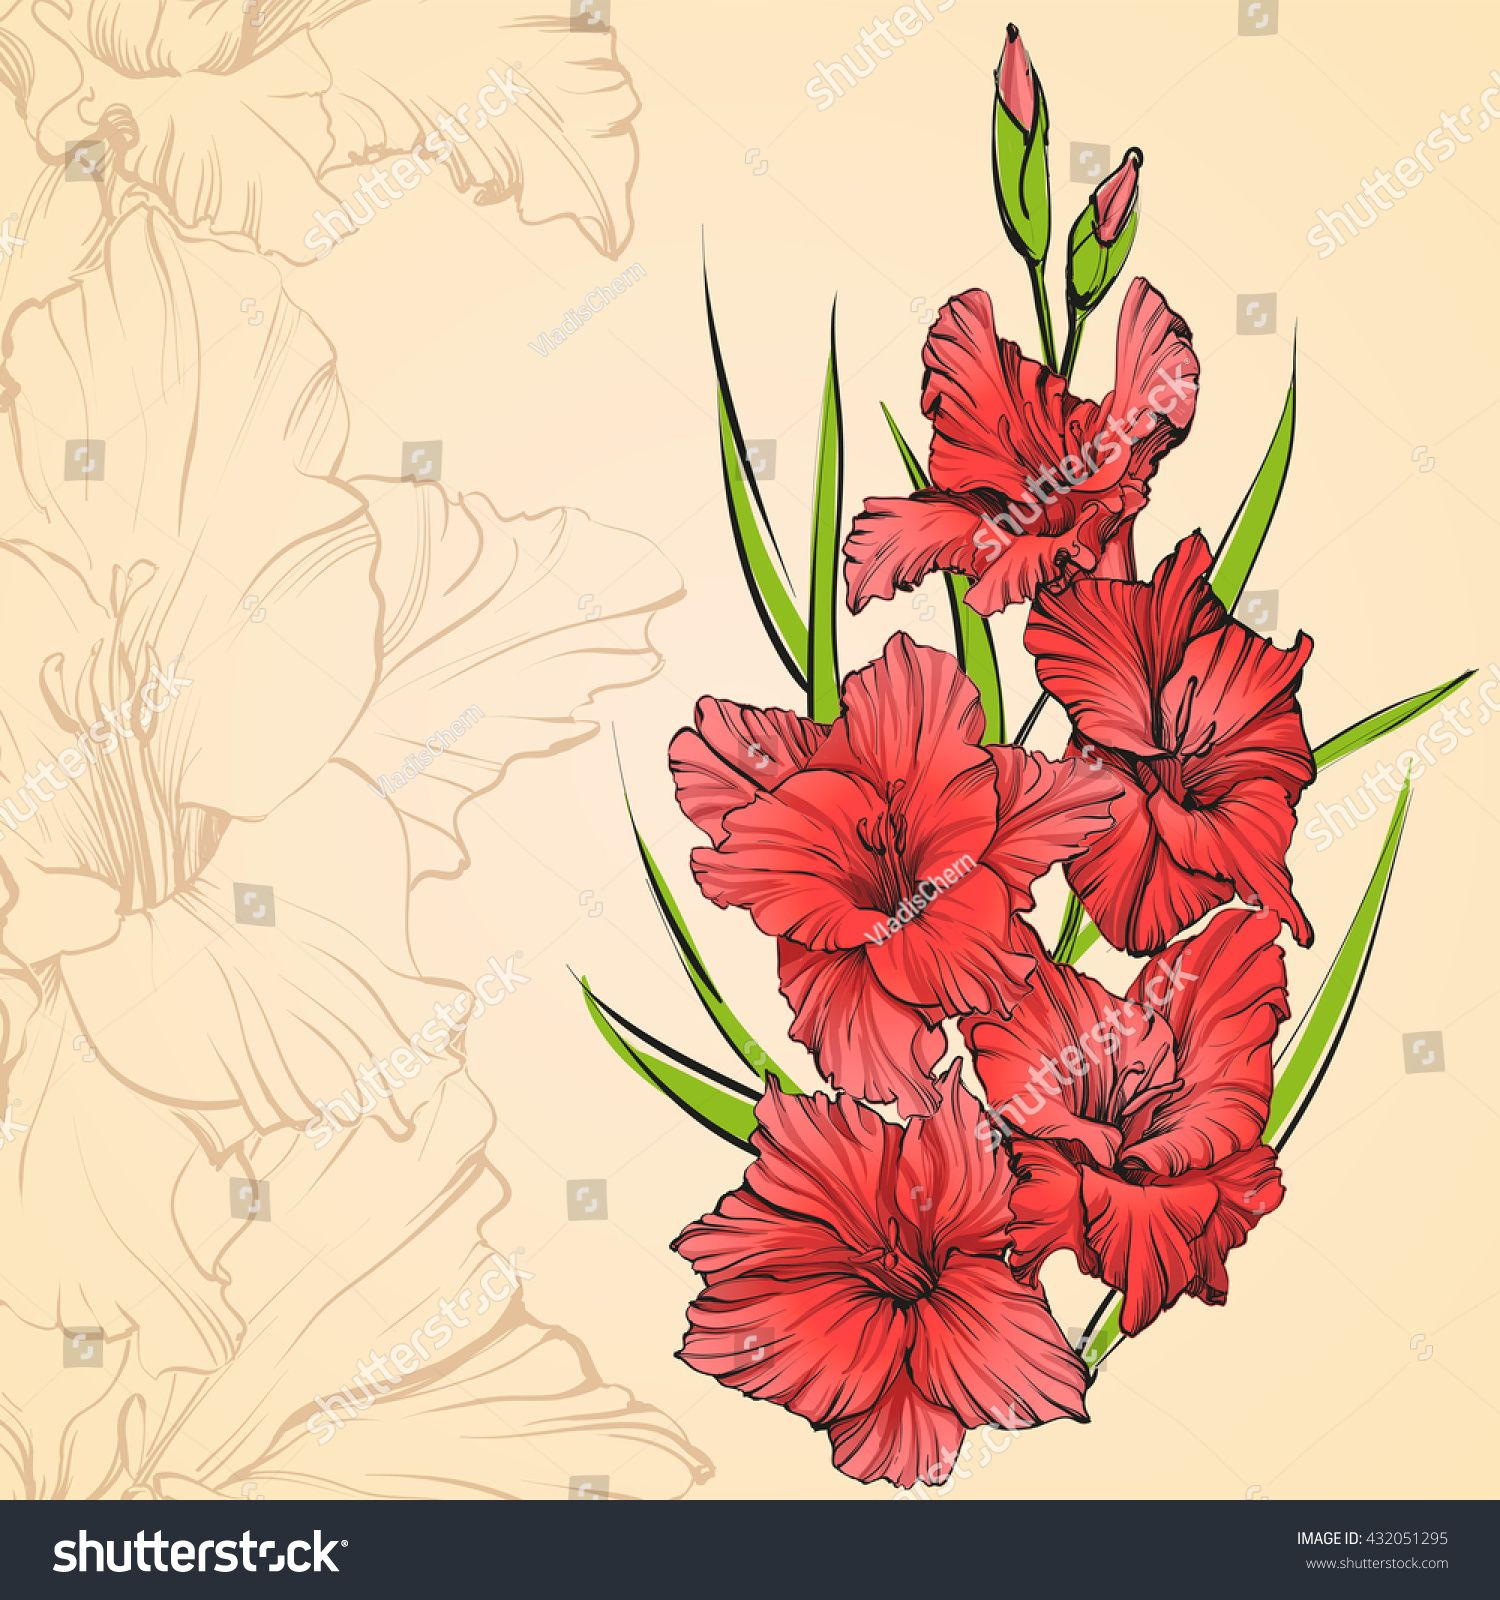 Floral Blooming Gladiolus Hand Drawn Vector Illustration Sketch Group Of Flowers Floral Background With Gla Gladiolus Gladiolus Tattoo Gladiolus Arrangements